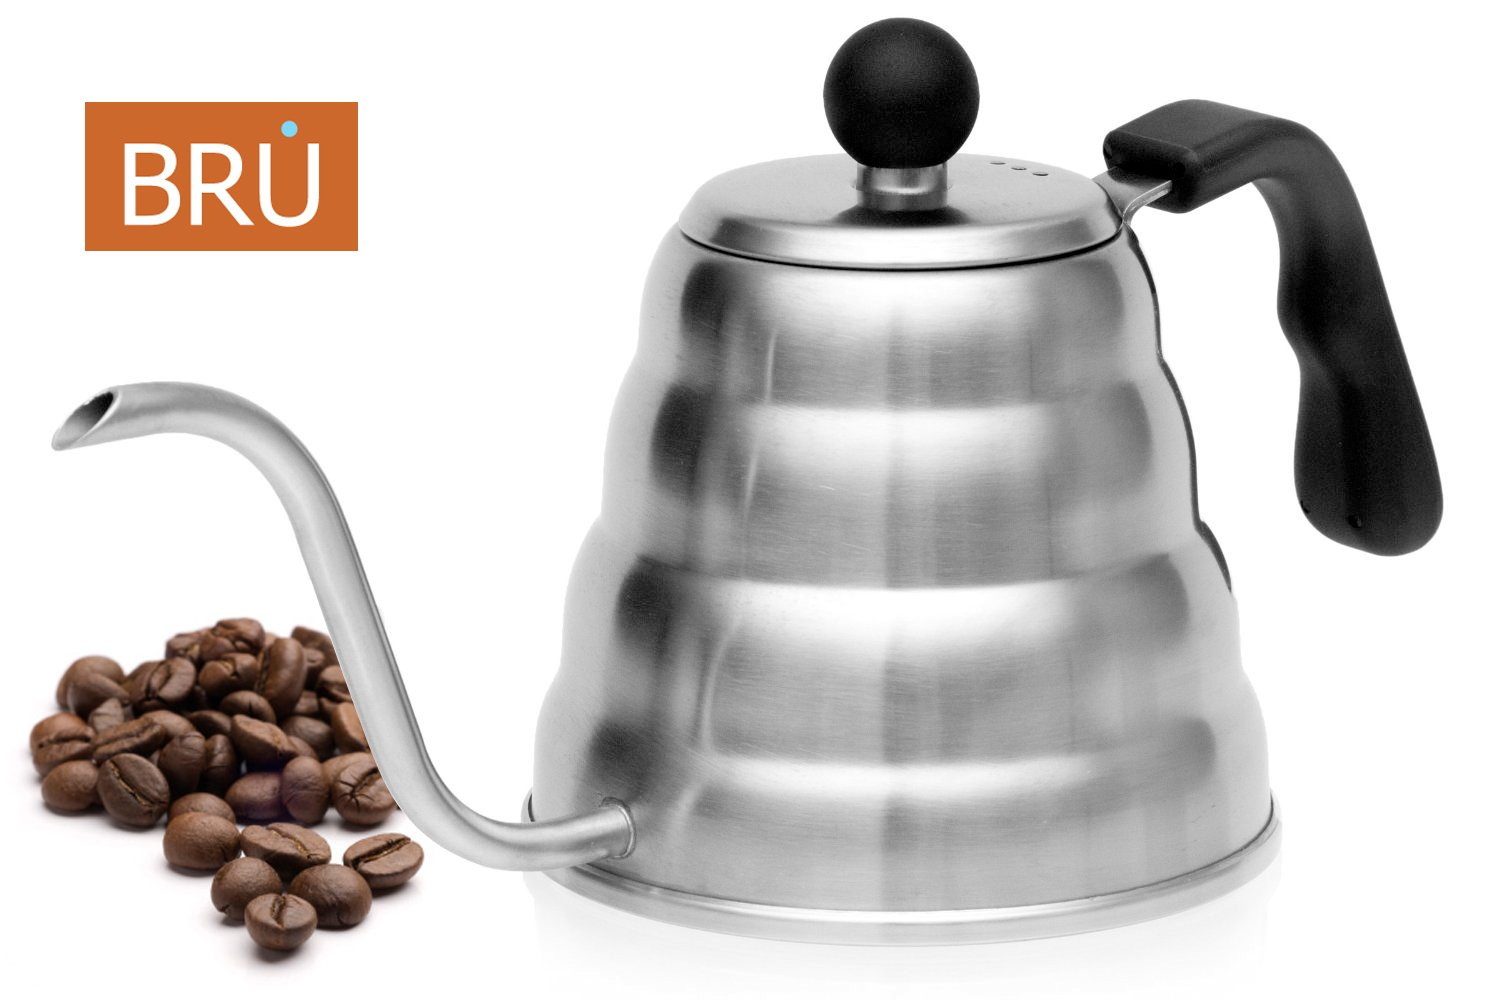 NEW! Pour Over Kettle - BRU Premium Coffee & Tea Drip Pot, Stainless Steel, 1.2L